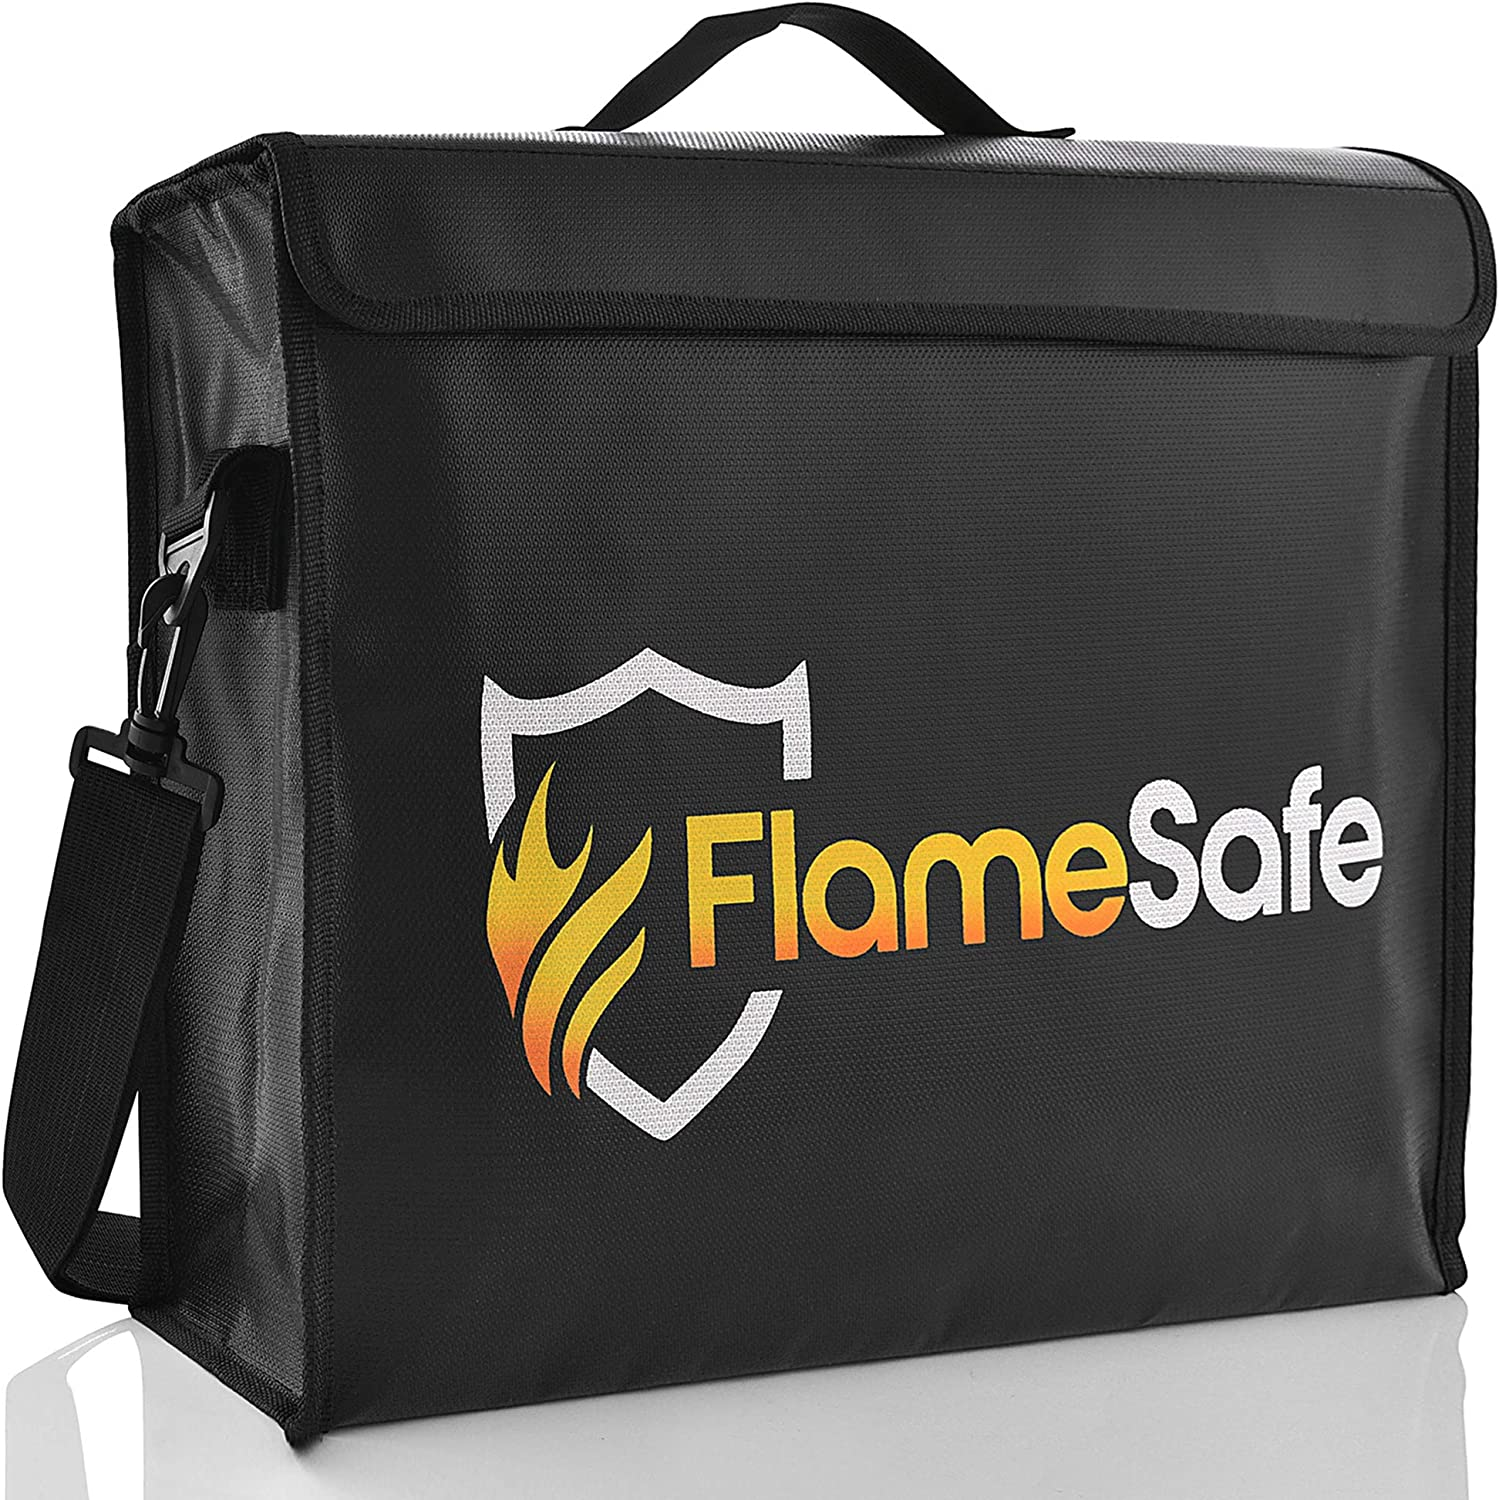 """FlameSafe XL Premium Fireproof Document Bag (16""""x12""""x 4"""") New Non-Itch Triple Layer Silicone Fiberglass Protection With Upgraded Heavy Duty Zipper. Fireproof Waterproof Document Holder And Money Safe"""